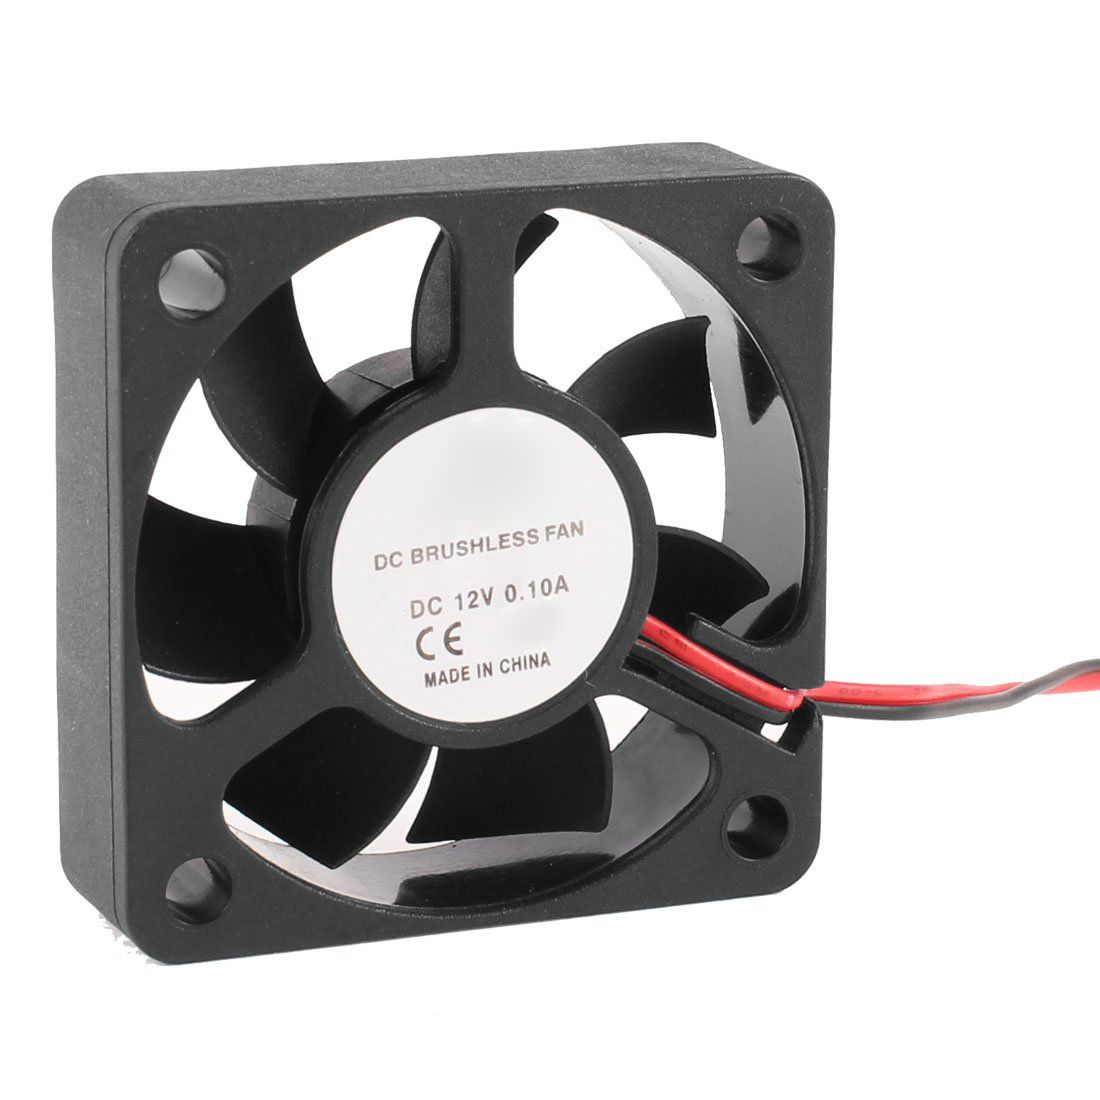 2016 New 50mm 12V 2Pin 4000RPM Sleeve Bearing PC Case CPU Cooler Cooling Fan gdstime 10 pcs dc 12v 14025 pc case cooling fan 140mm x 25mm 14cm 2 wire 2pin connector computer 140x140x25mm